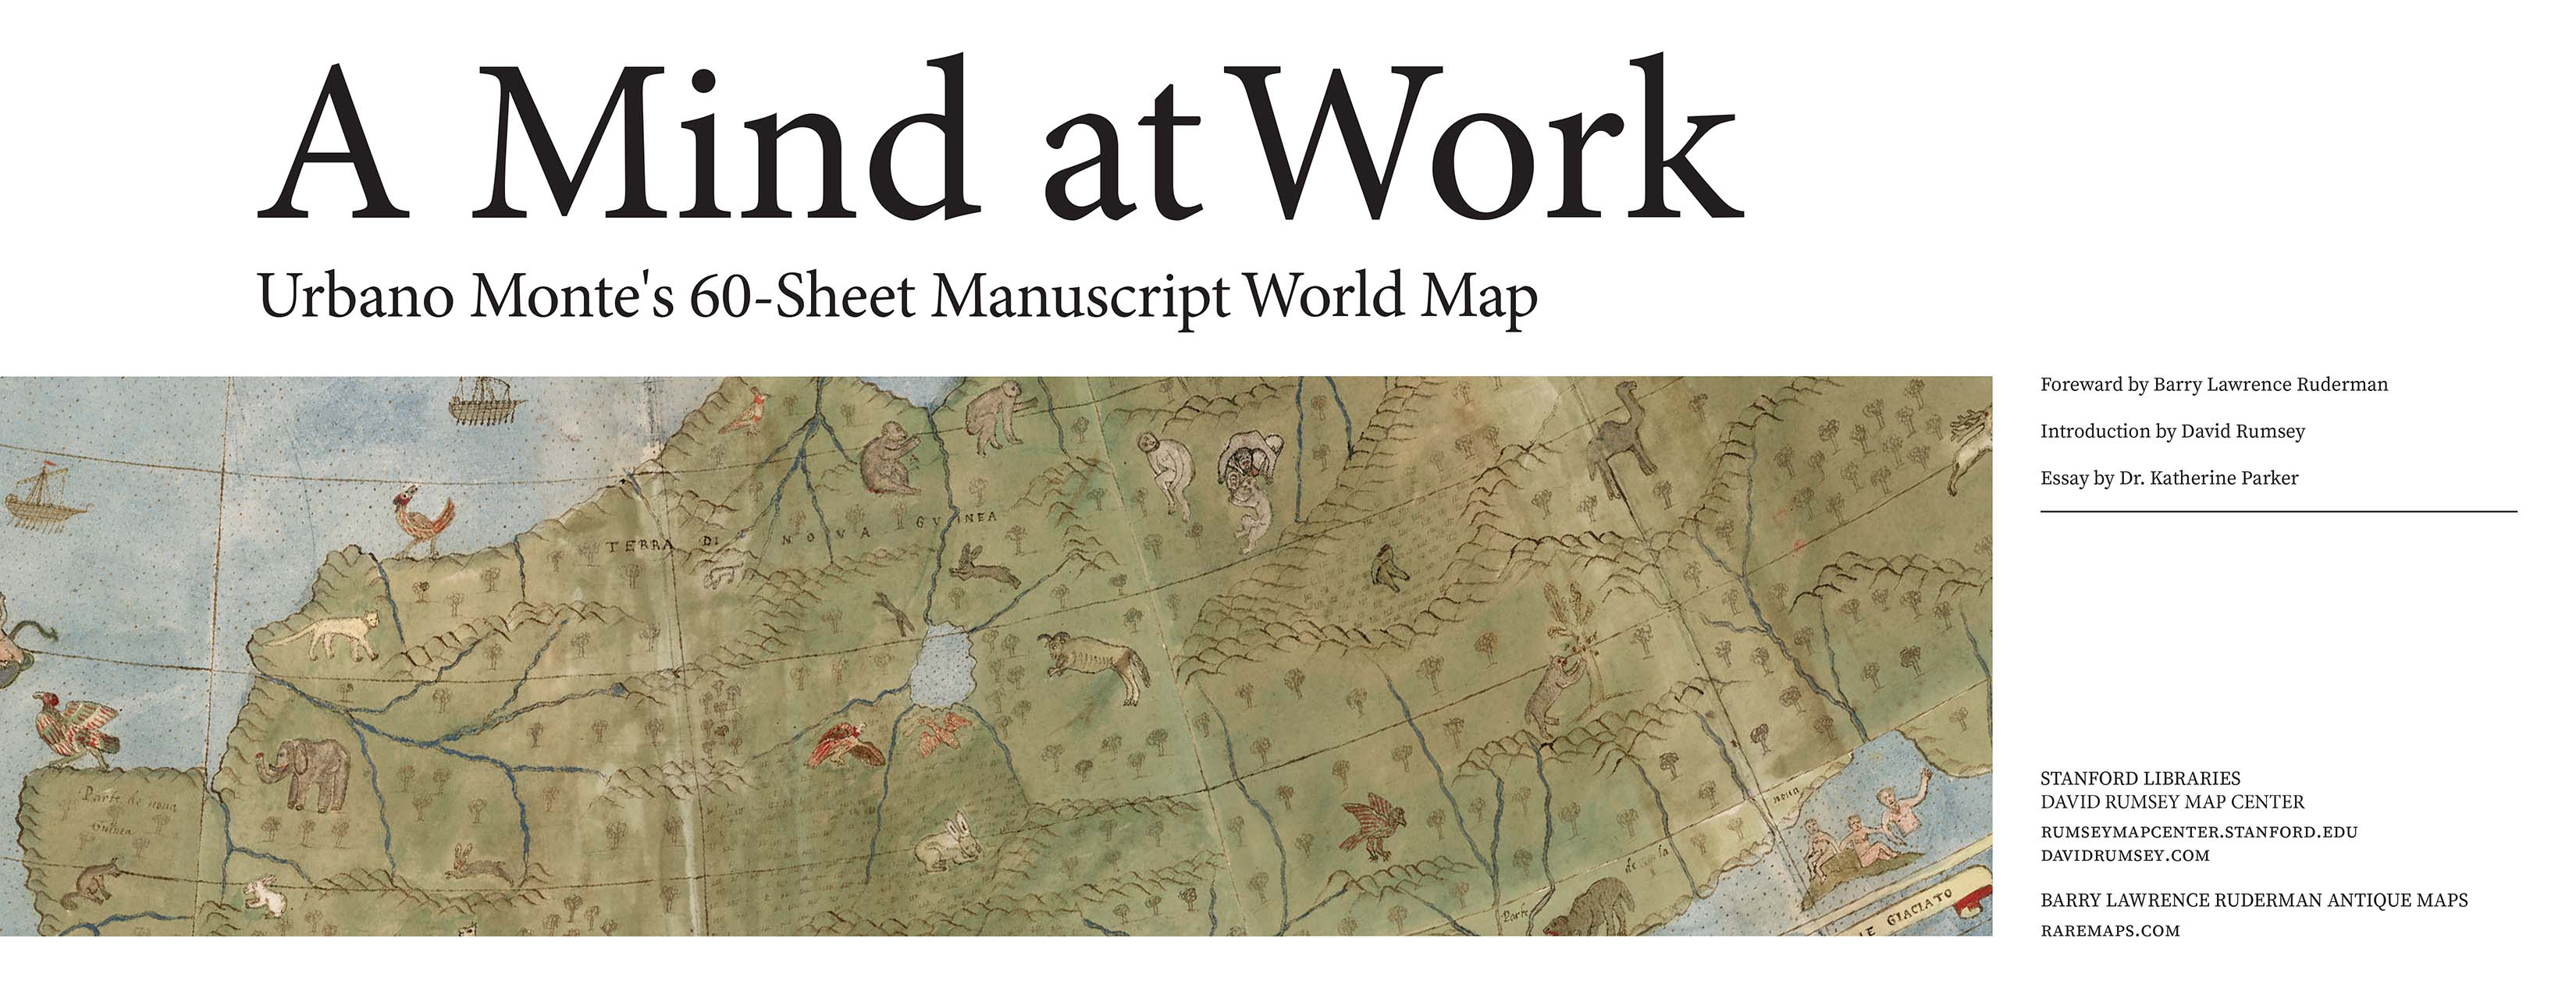 David rumsey historical map collection largest early world map read pdf a mind at work urbano montes 60 sheet manuscript world map forward by barry lawrence ruderman introduction by david rumsey gumiabroncs Images